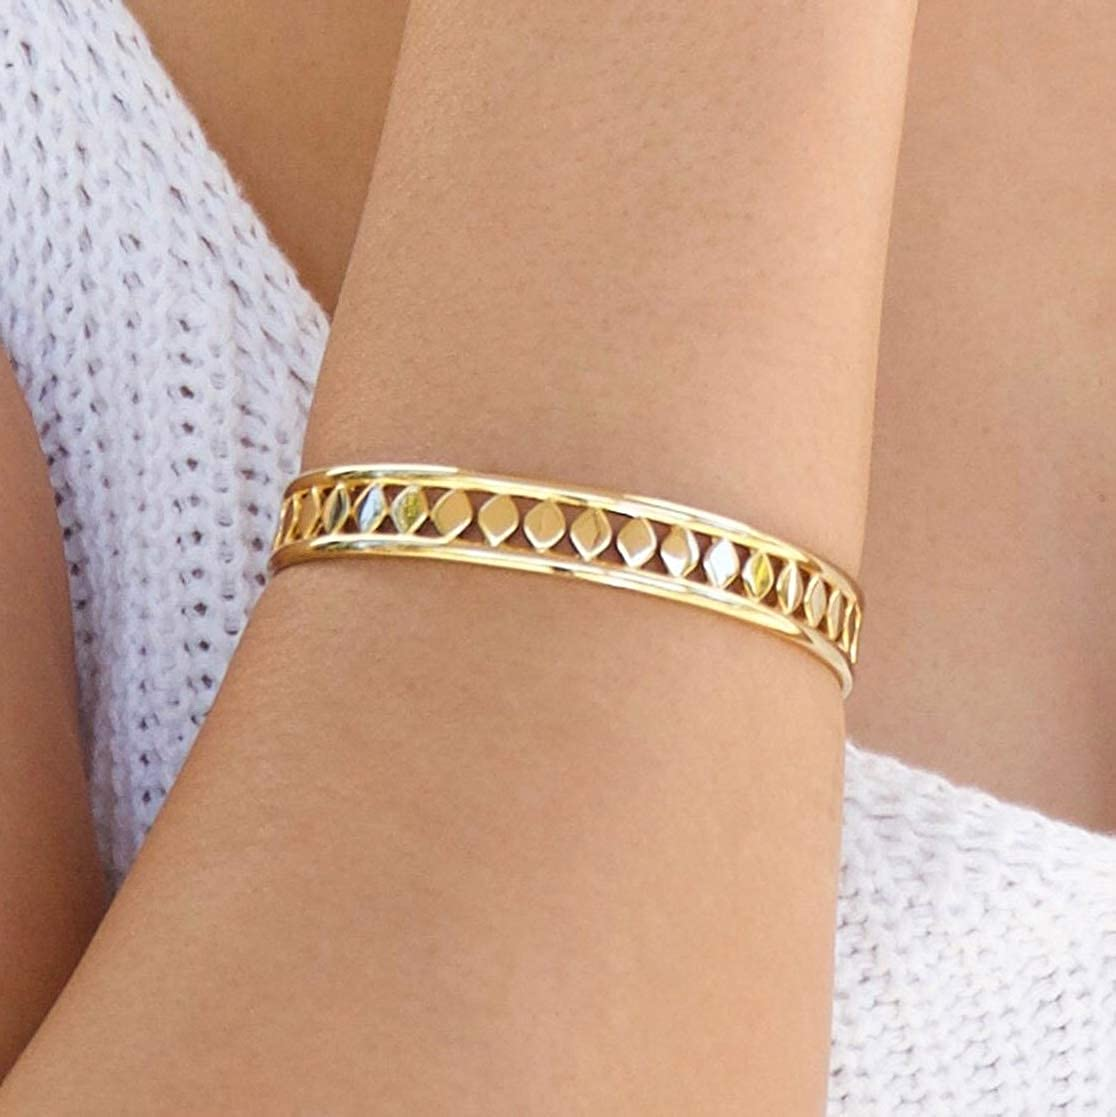 14K Gold Plated Stylish Cuff Bracelet Features Diamond Shaped Etchings That Shimmer and Shine. Jules Smith Aida Gold Cuff for Women or Girls